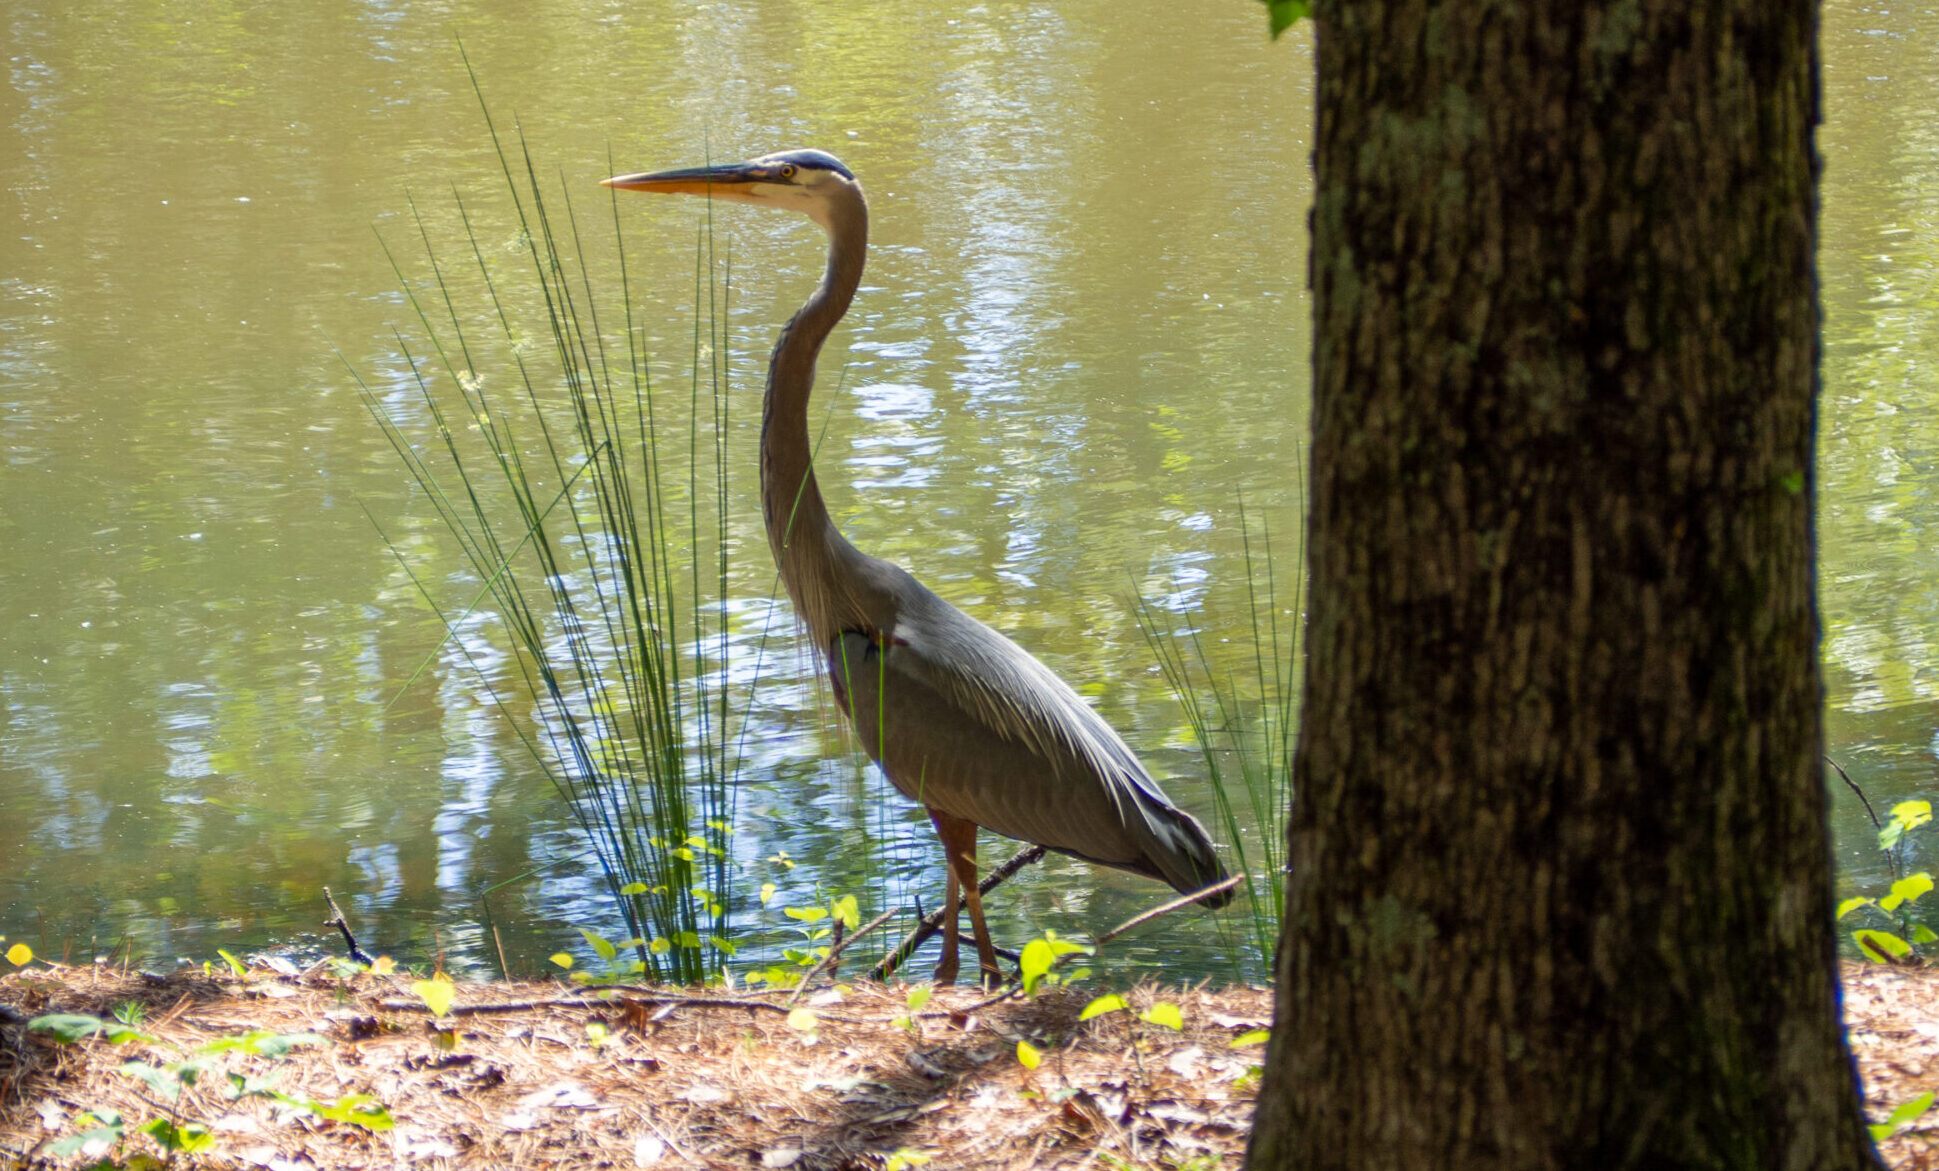 Where do Great Blue Herons catch their snacks?